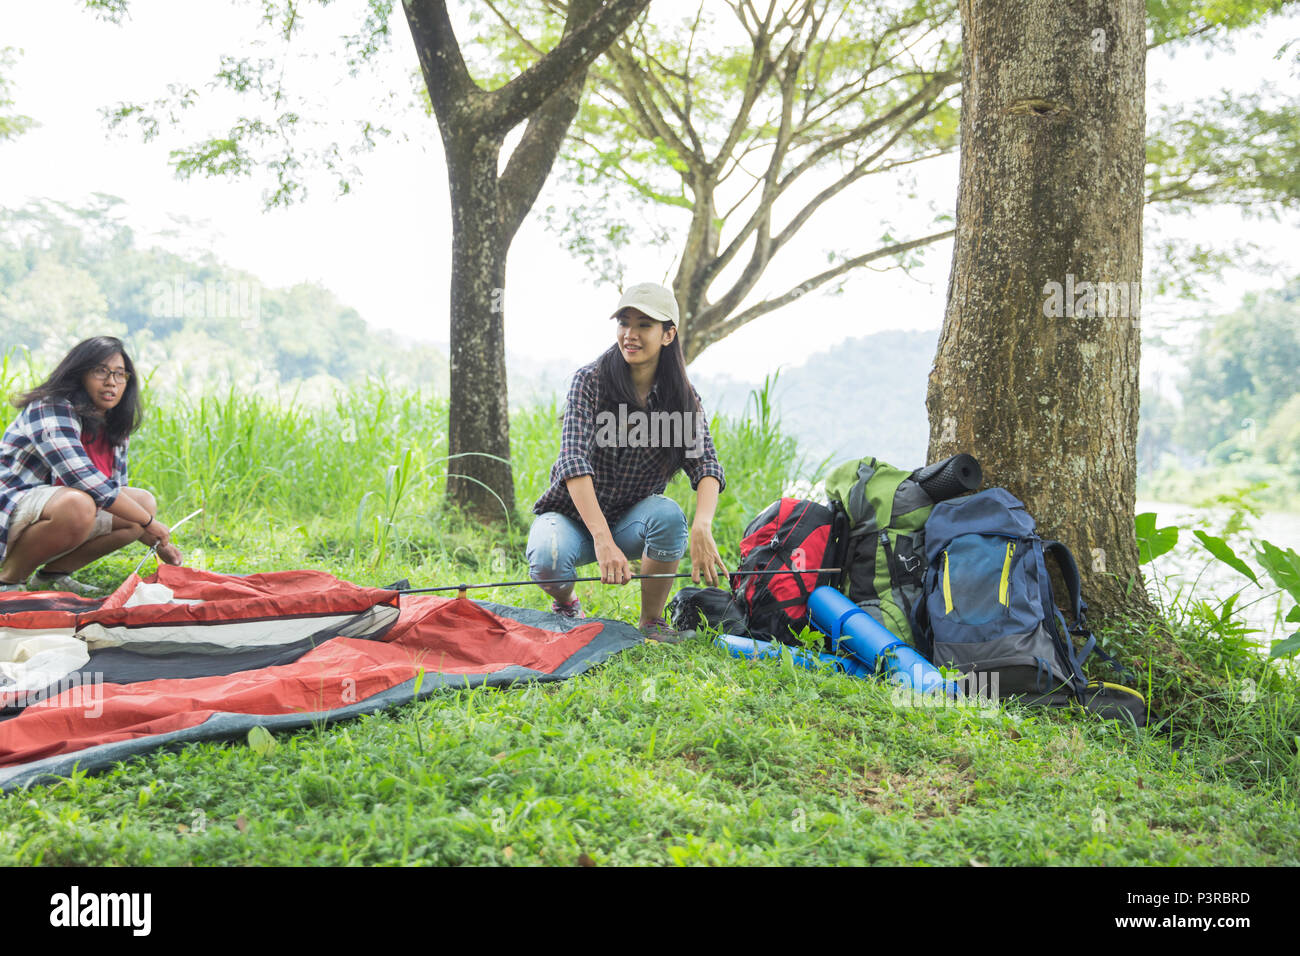 girl prepare tent nature tourism concept - Stock Image